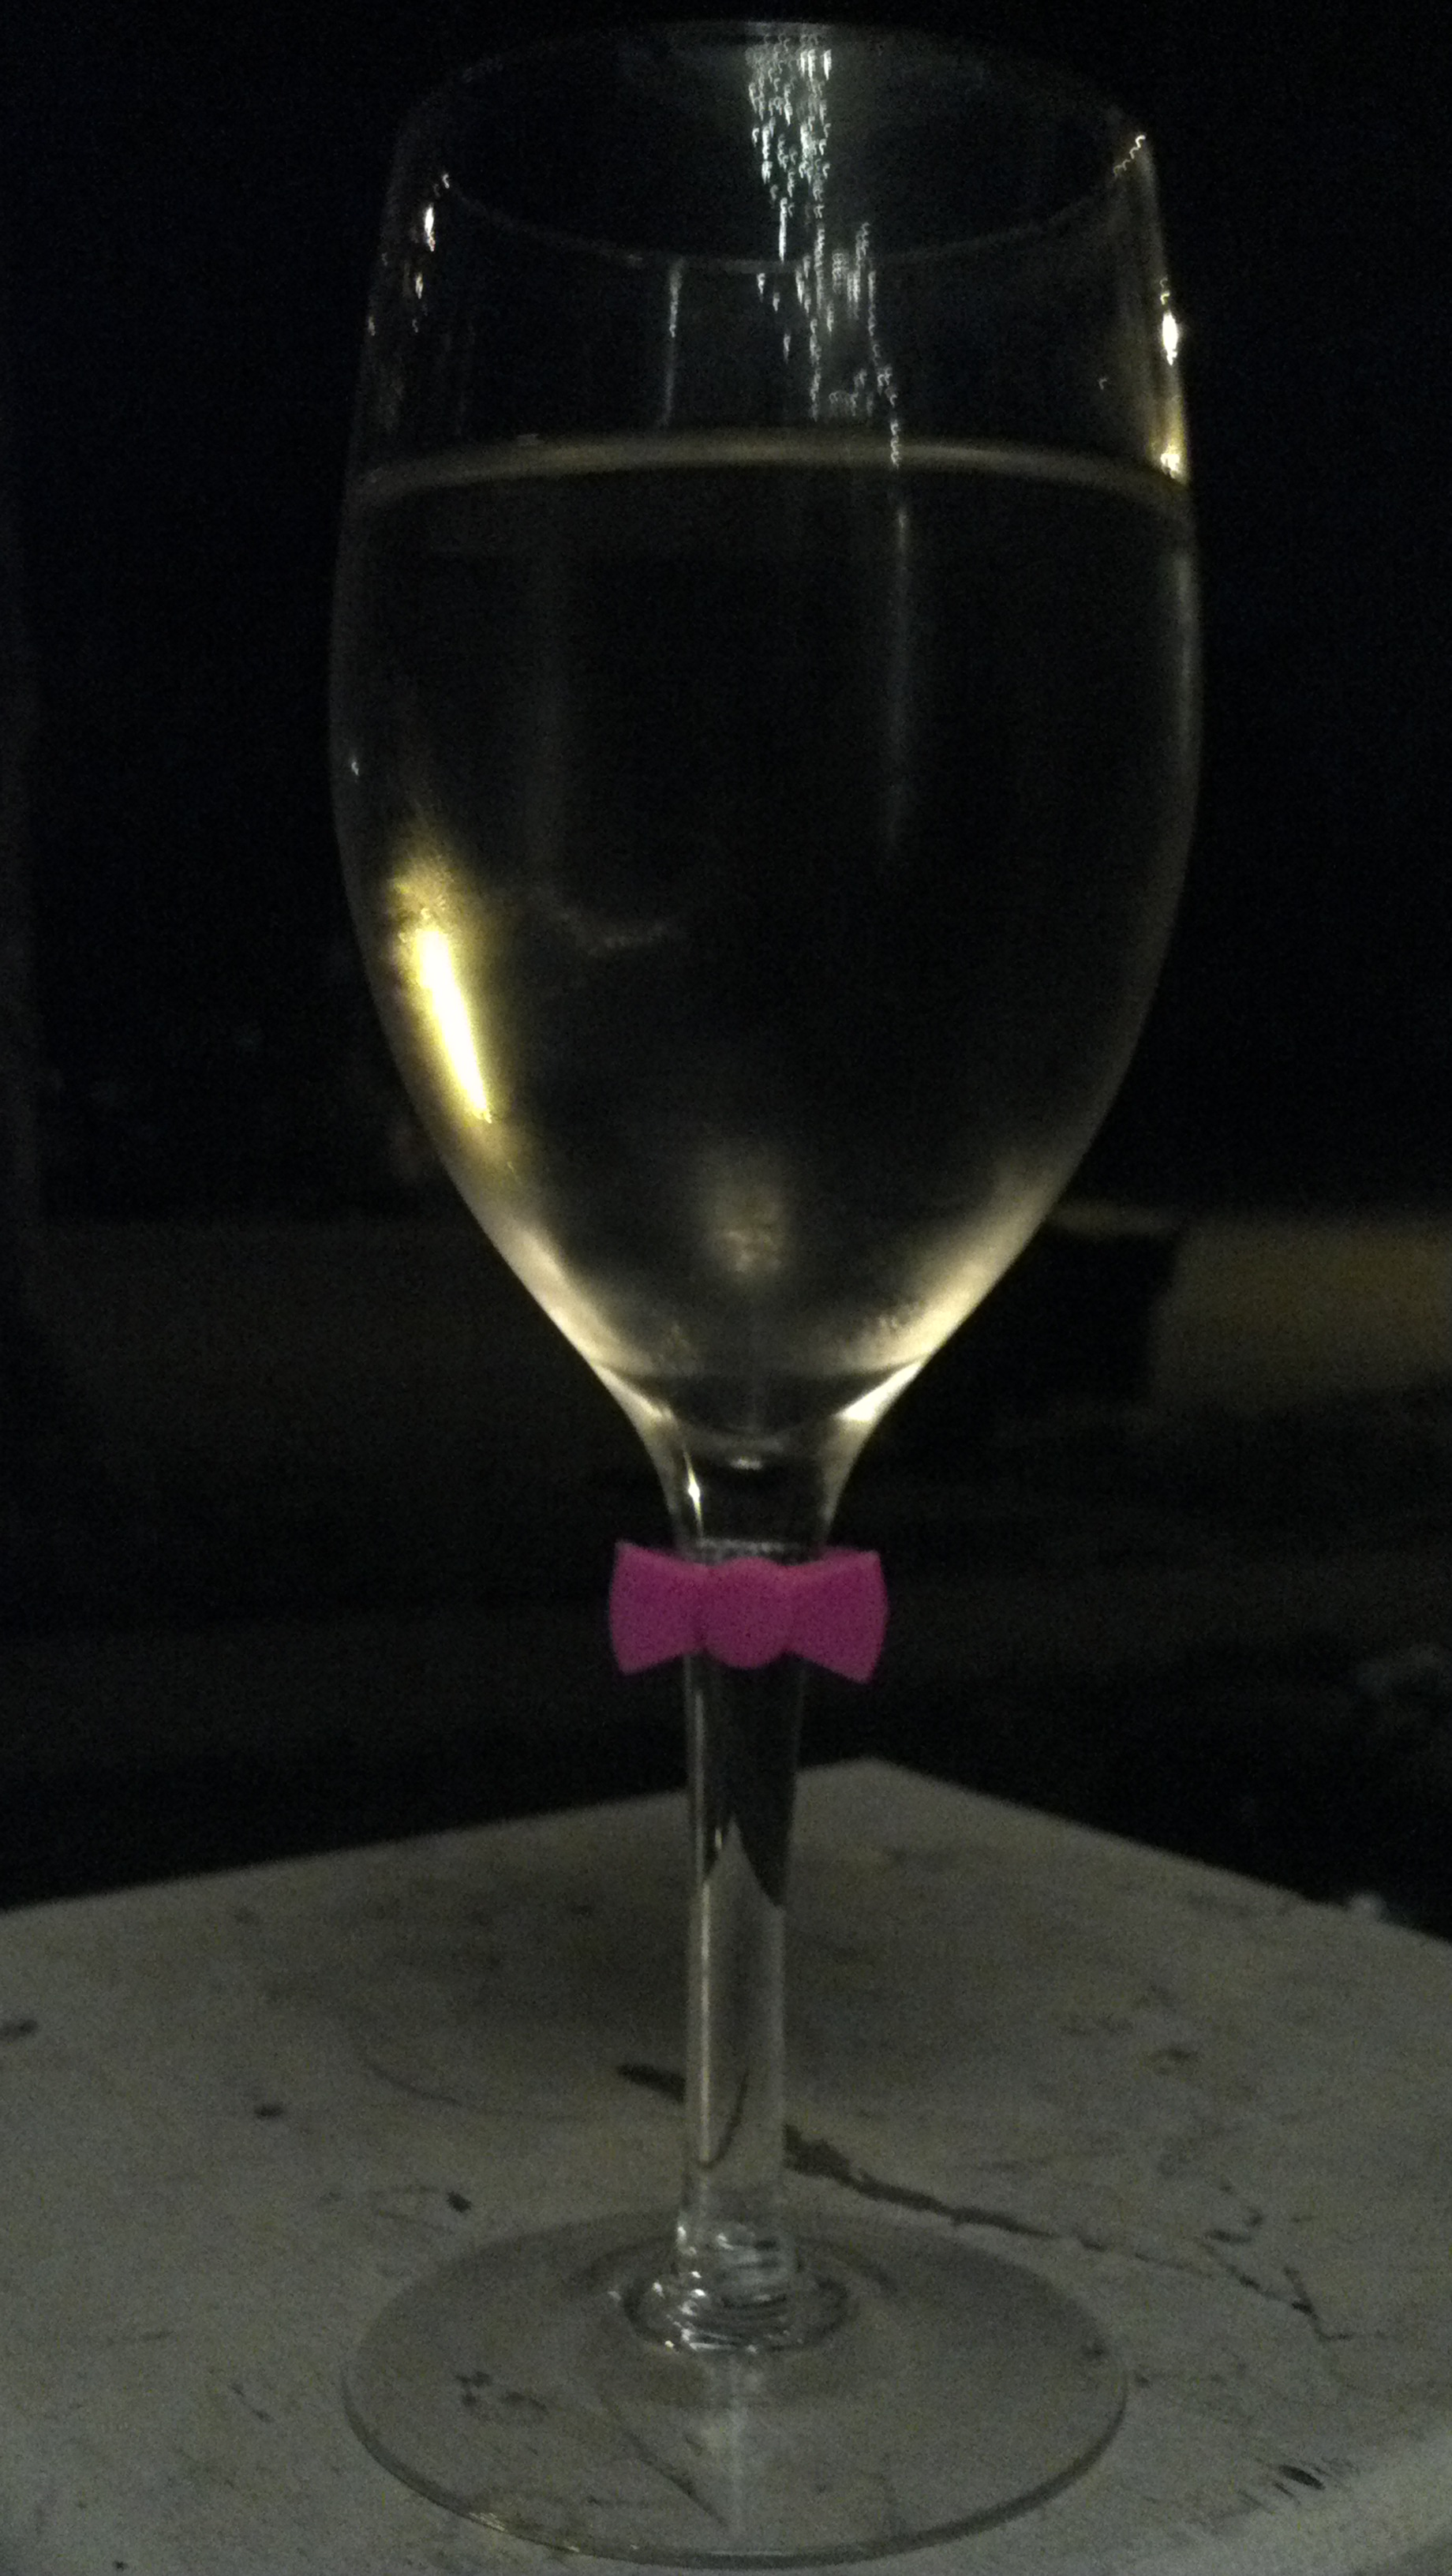 Even my wineglass has a bow on it. TSM.